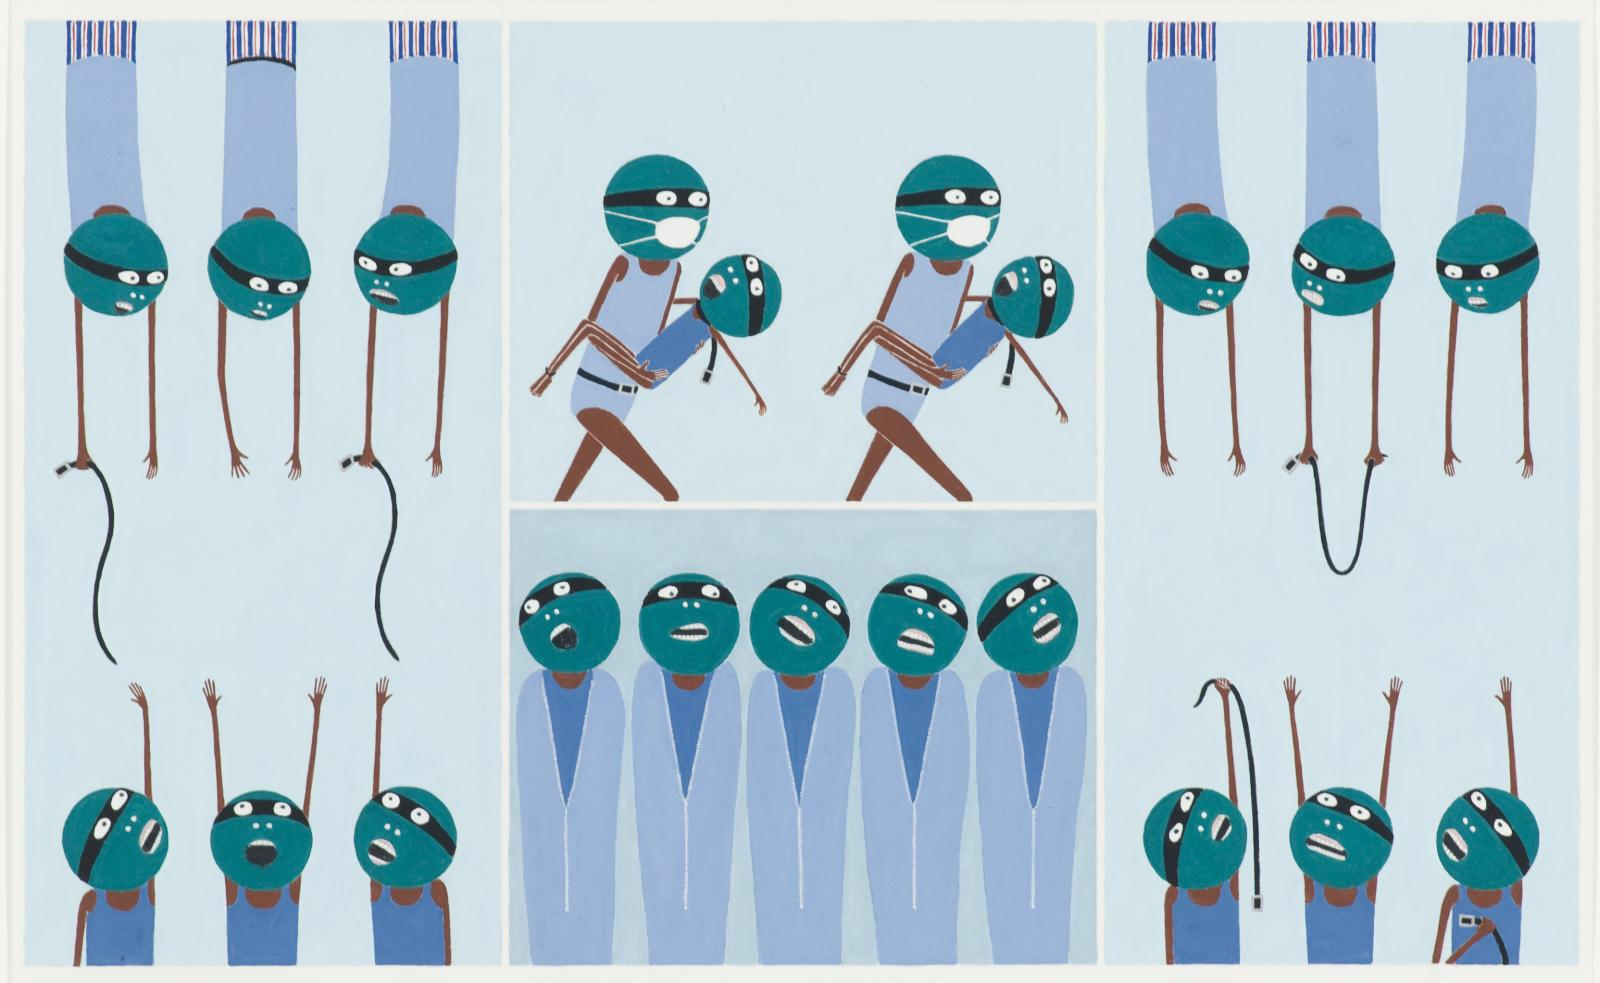 A set of four scenes features 21 green-headed, masked figures with skinny brown limbs. They engage in sinister acts with belts.